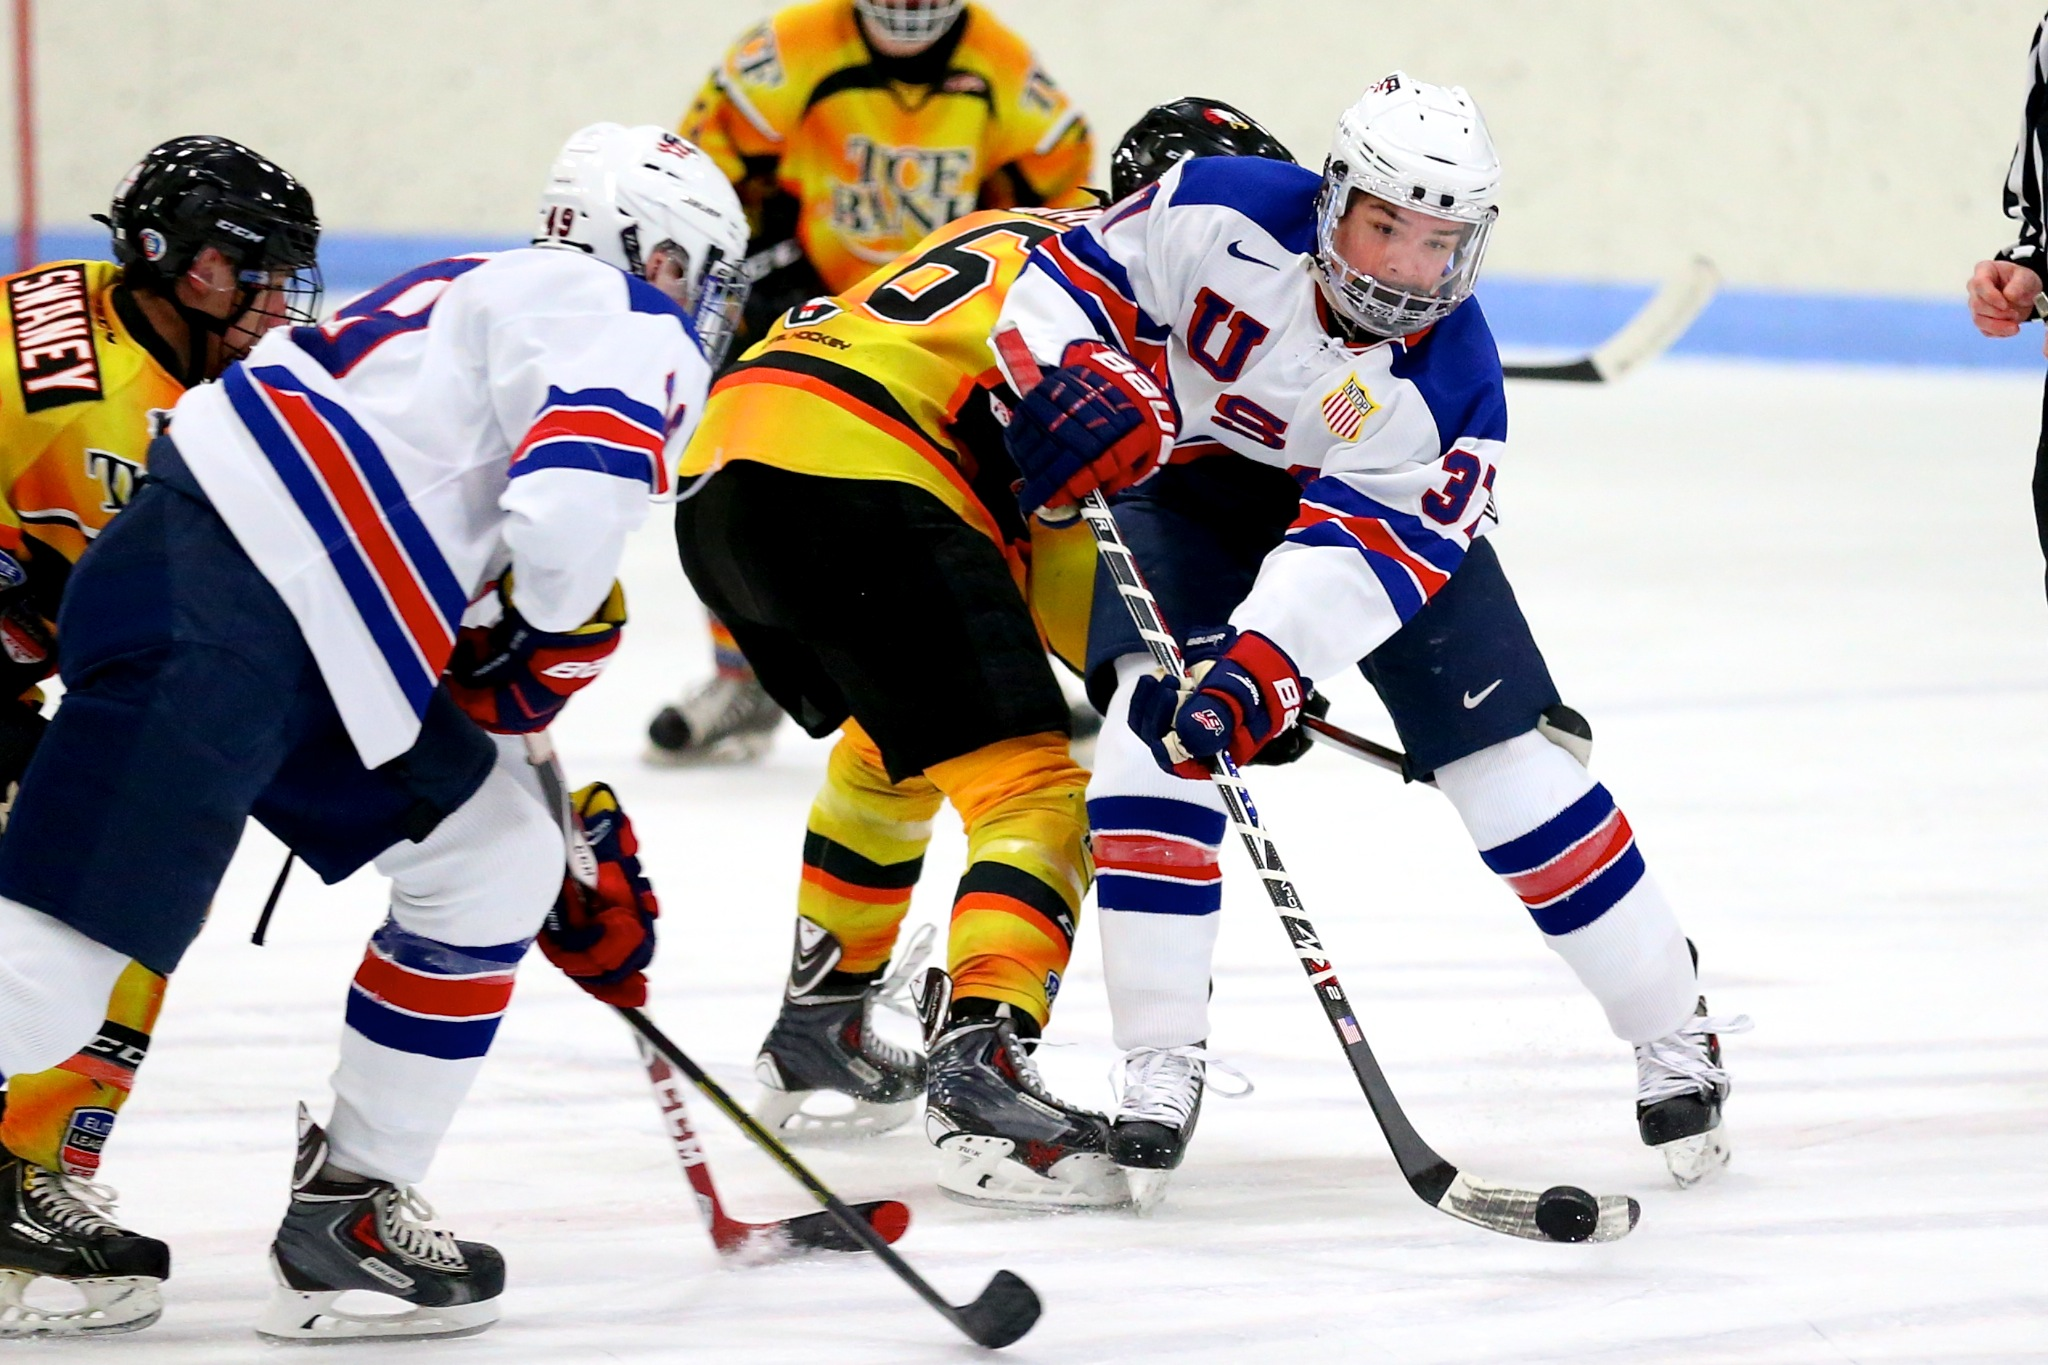 MN H.S.: U.S. Under-17 Squad Races To Big Early Lead In Eventual Blowout Of Elite League's Team Southeast